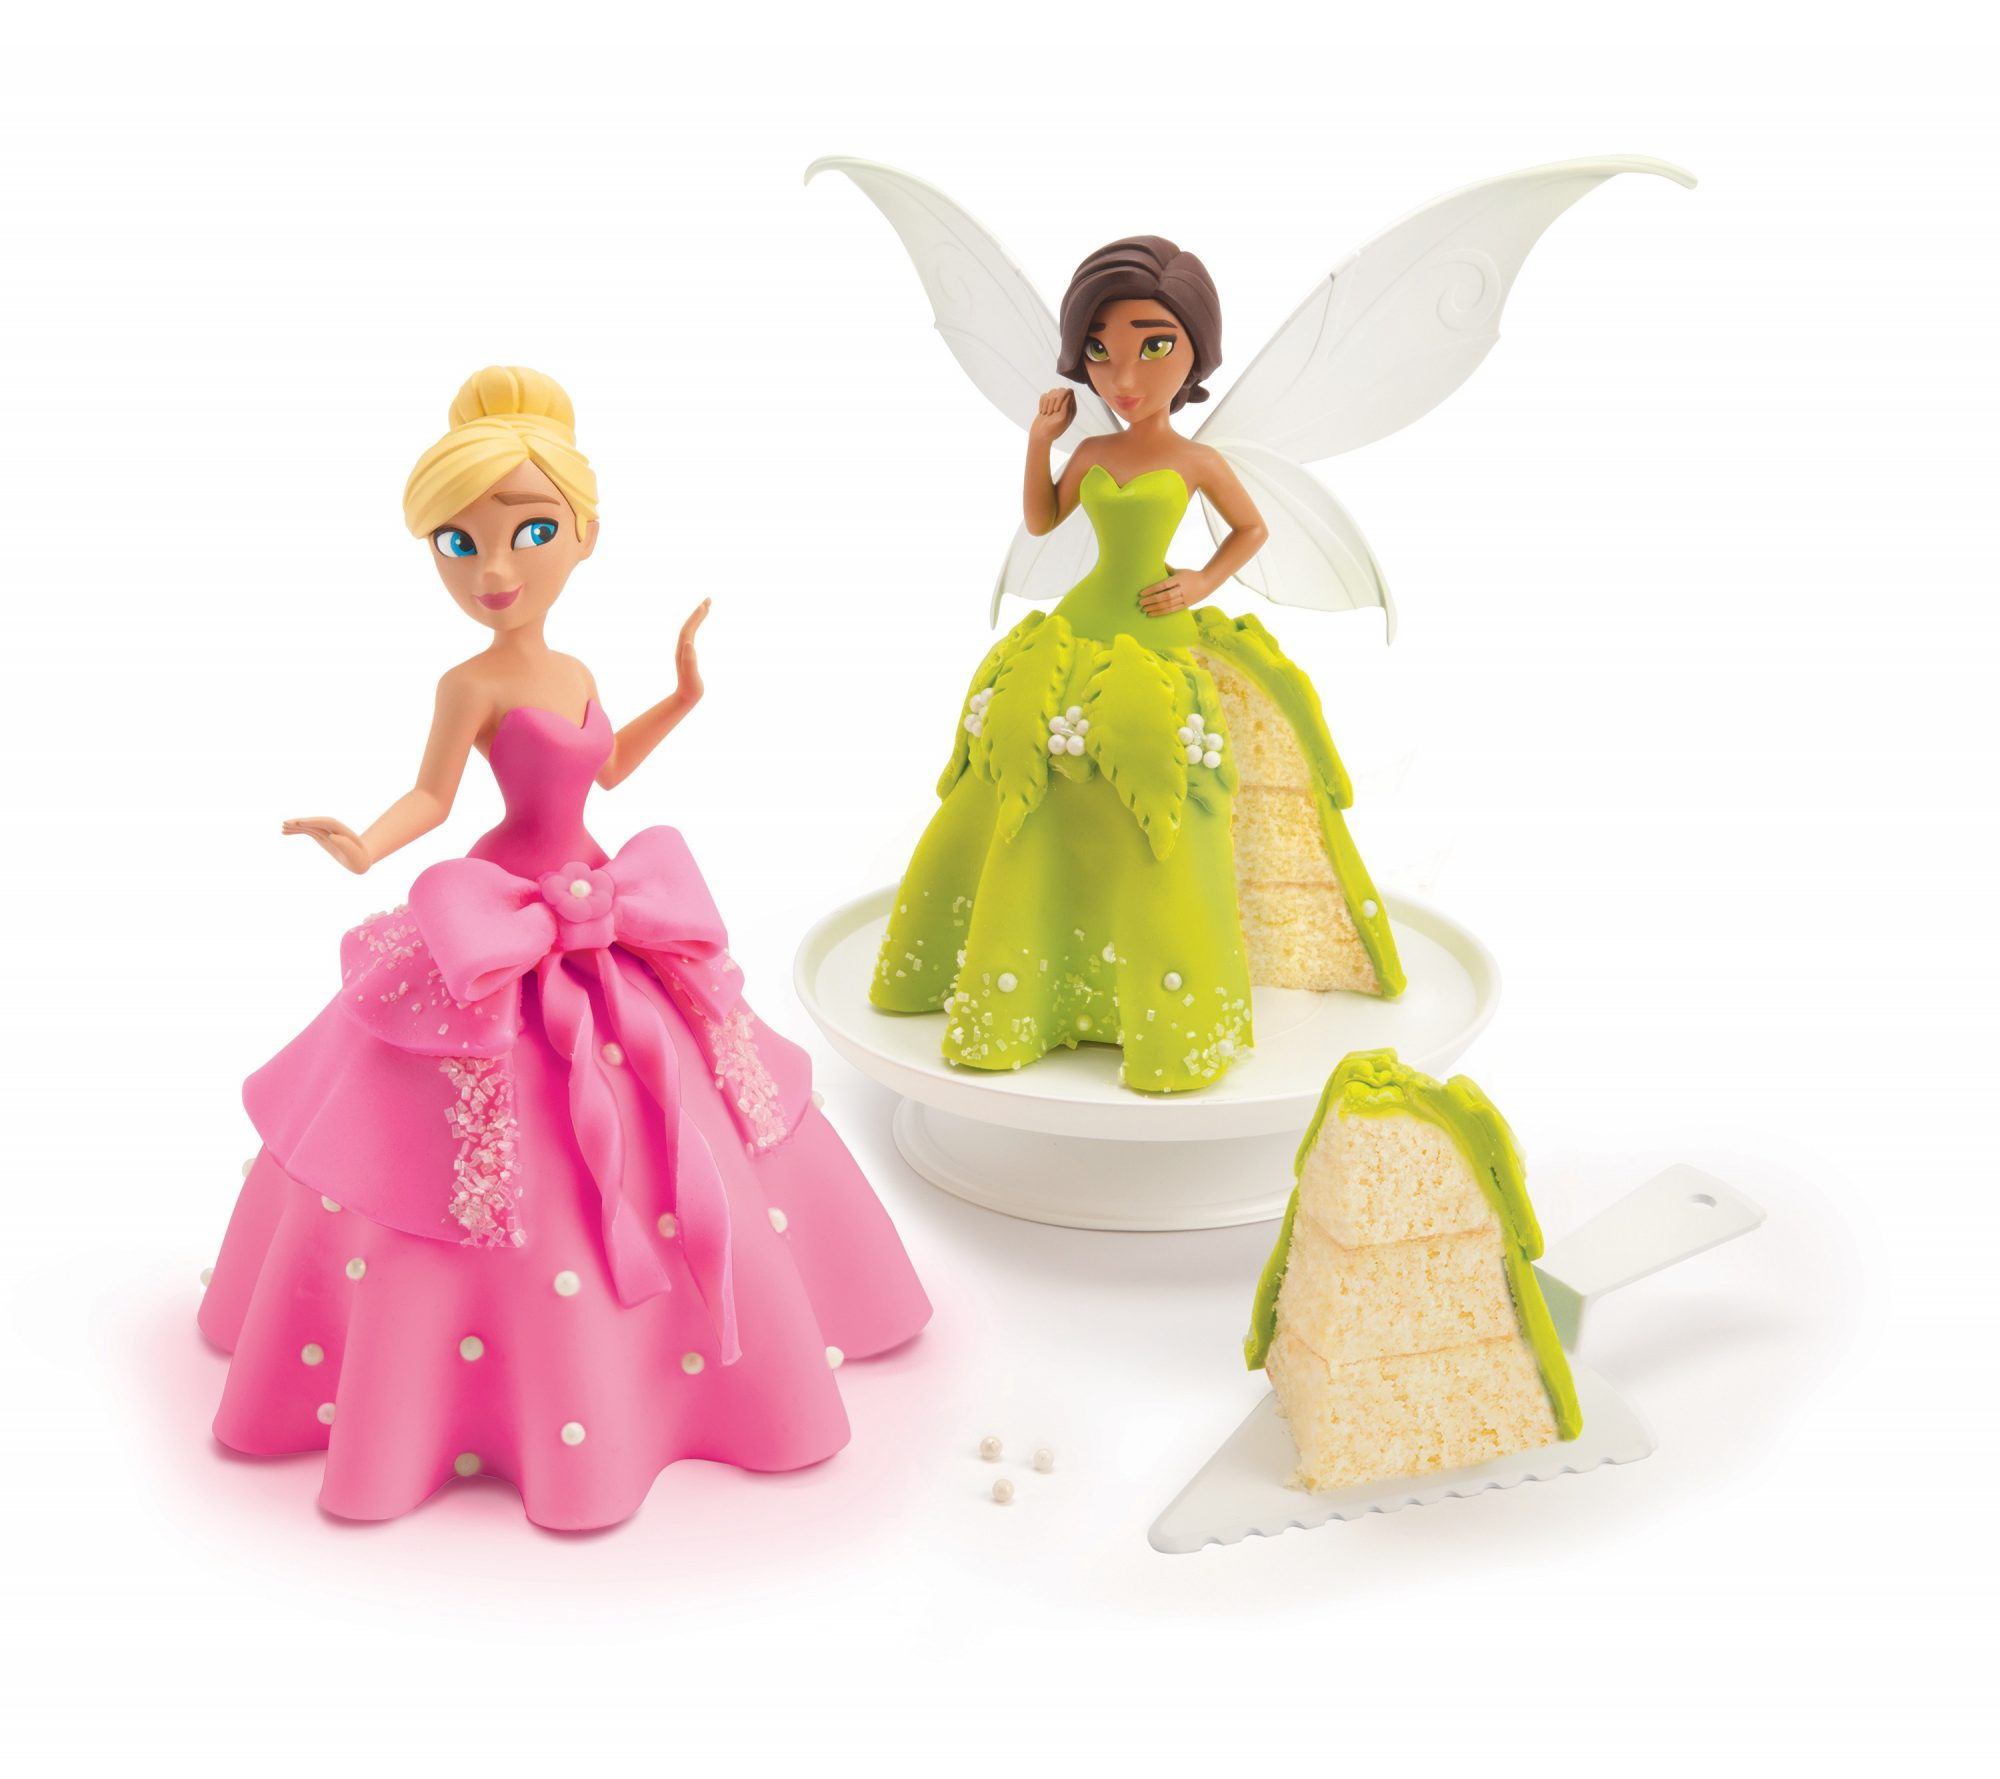 Princess and Fairy.jpeg